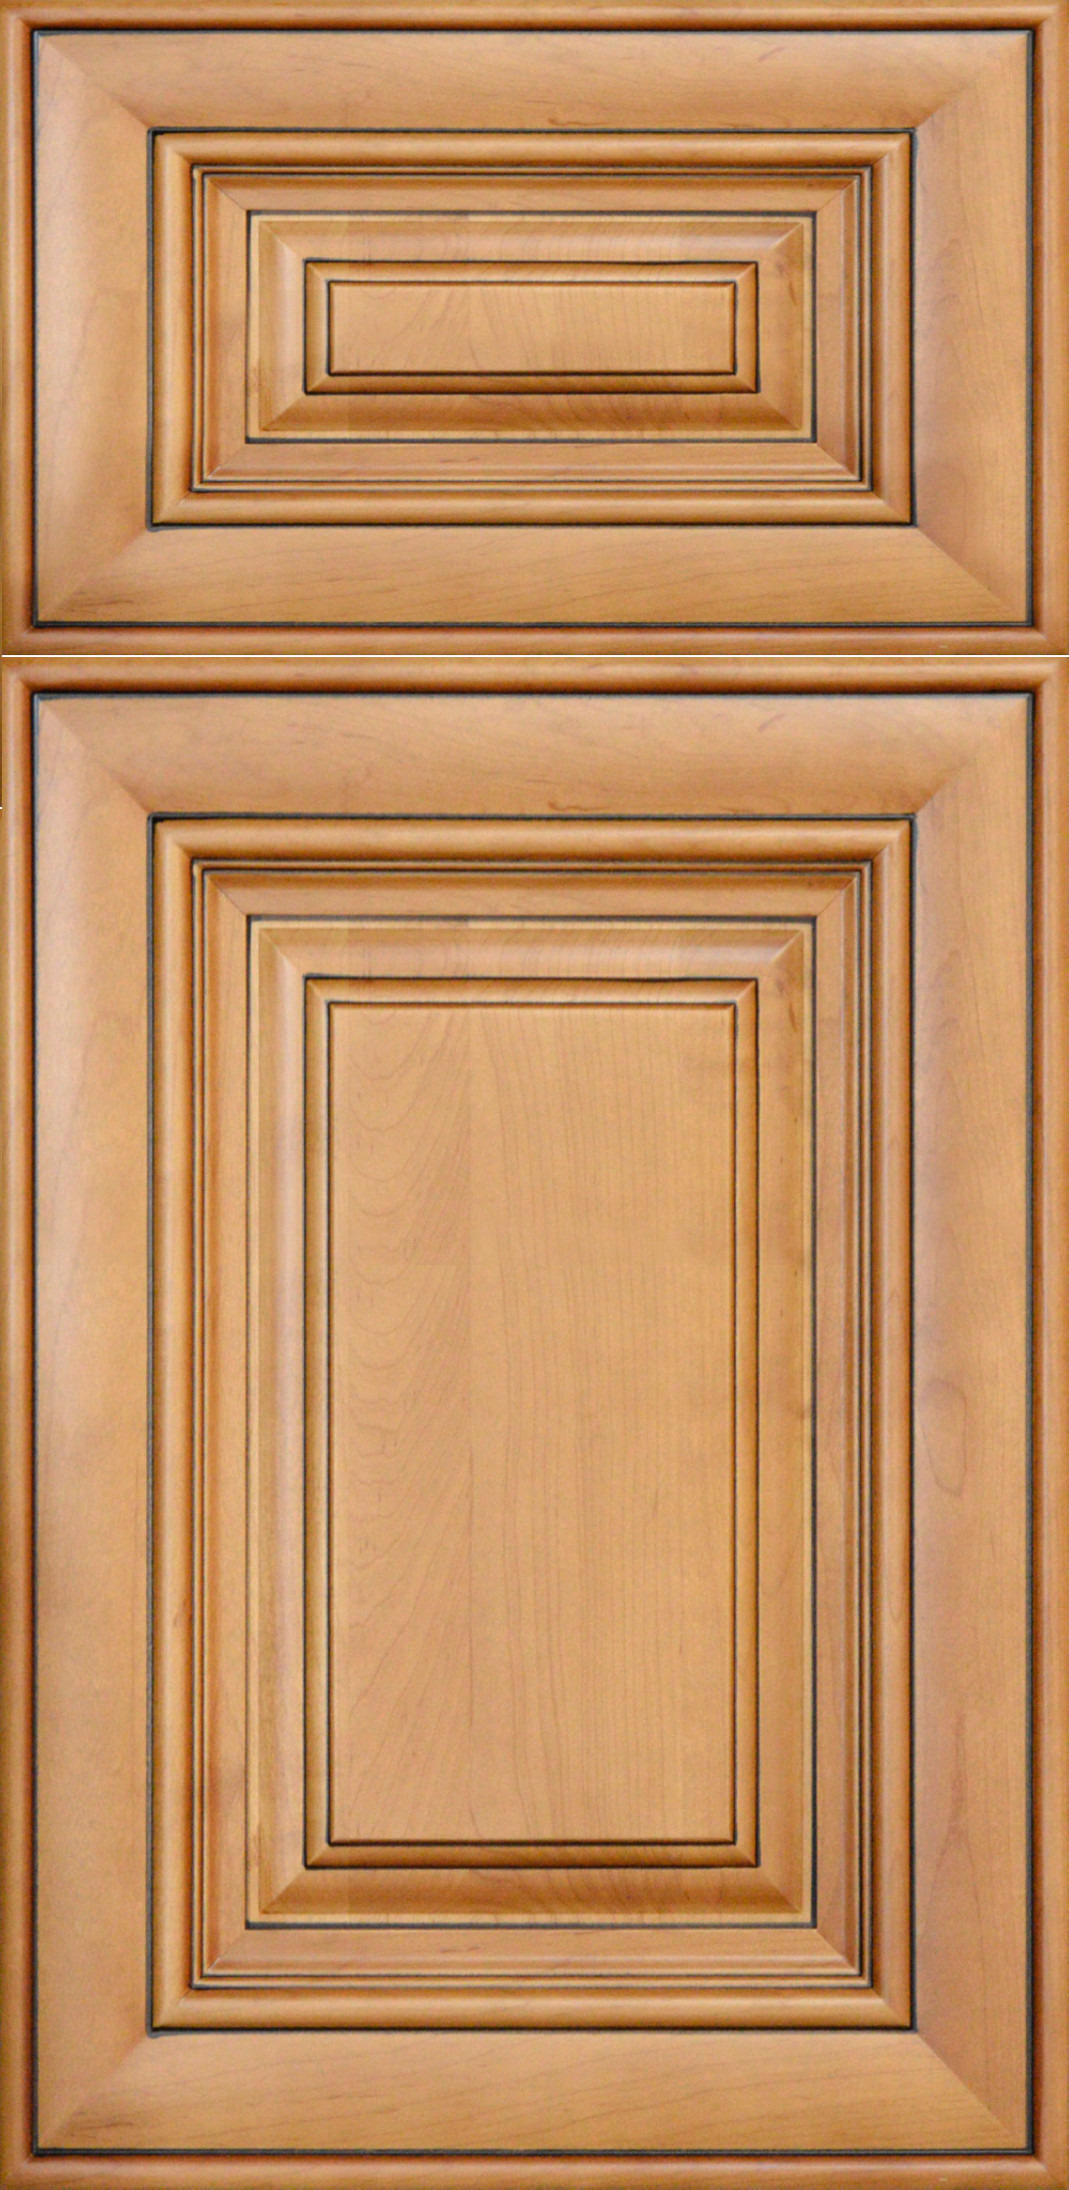 lowes hinges lowes cabinet hinges spring loaded hinges home depot soft close cabinet hinges european cabinet hinges